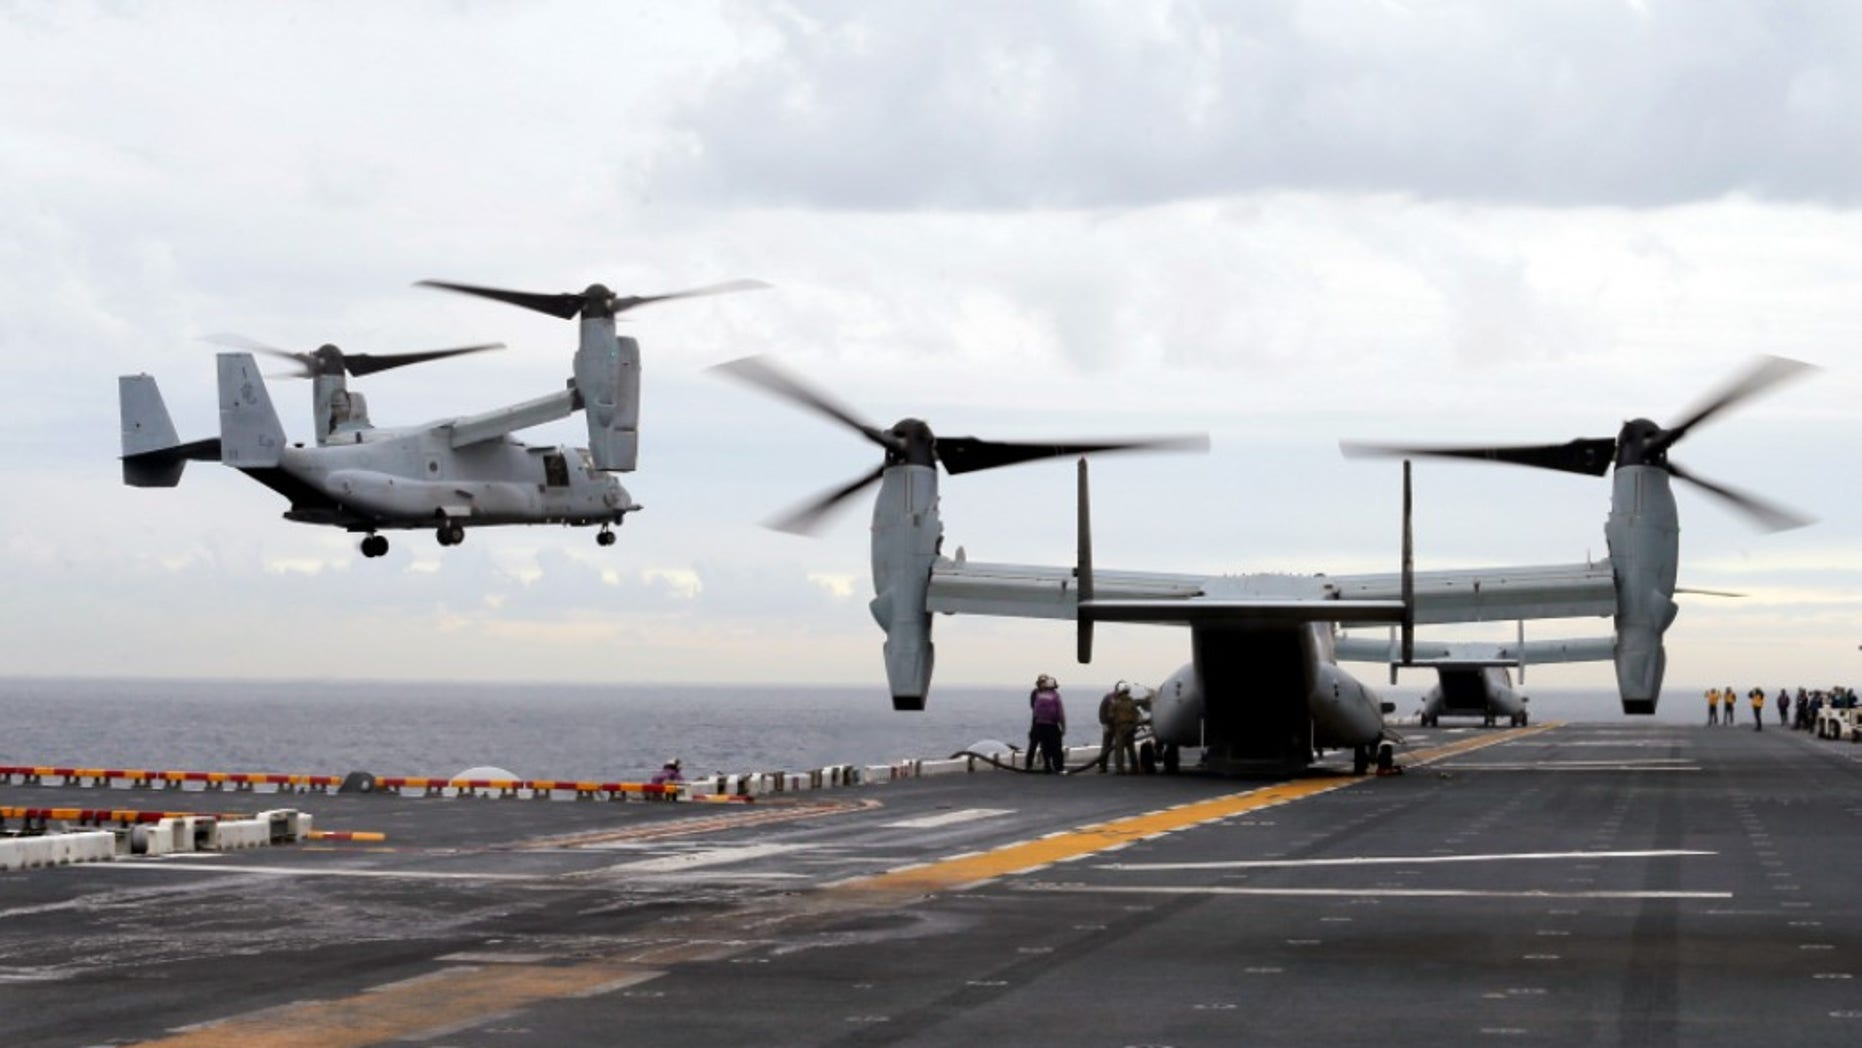 A MV-22 Osprey that had launched from the USS Bonhomme was conducting regularly scheduled operations when it crashed into the water off Australia's east coast, Saturday, Aug. 5.